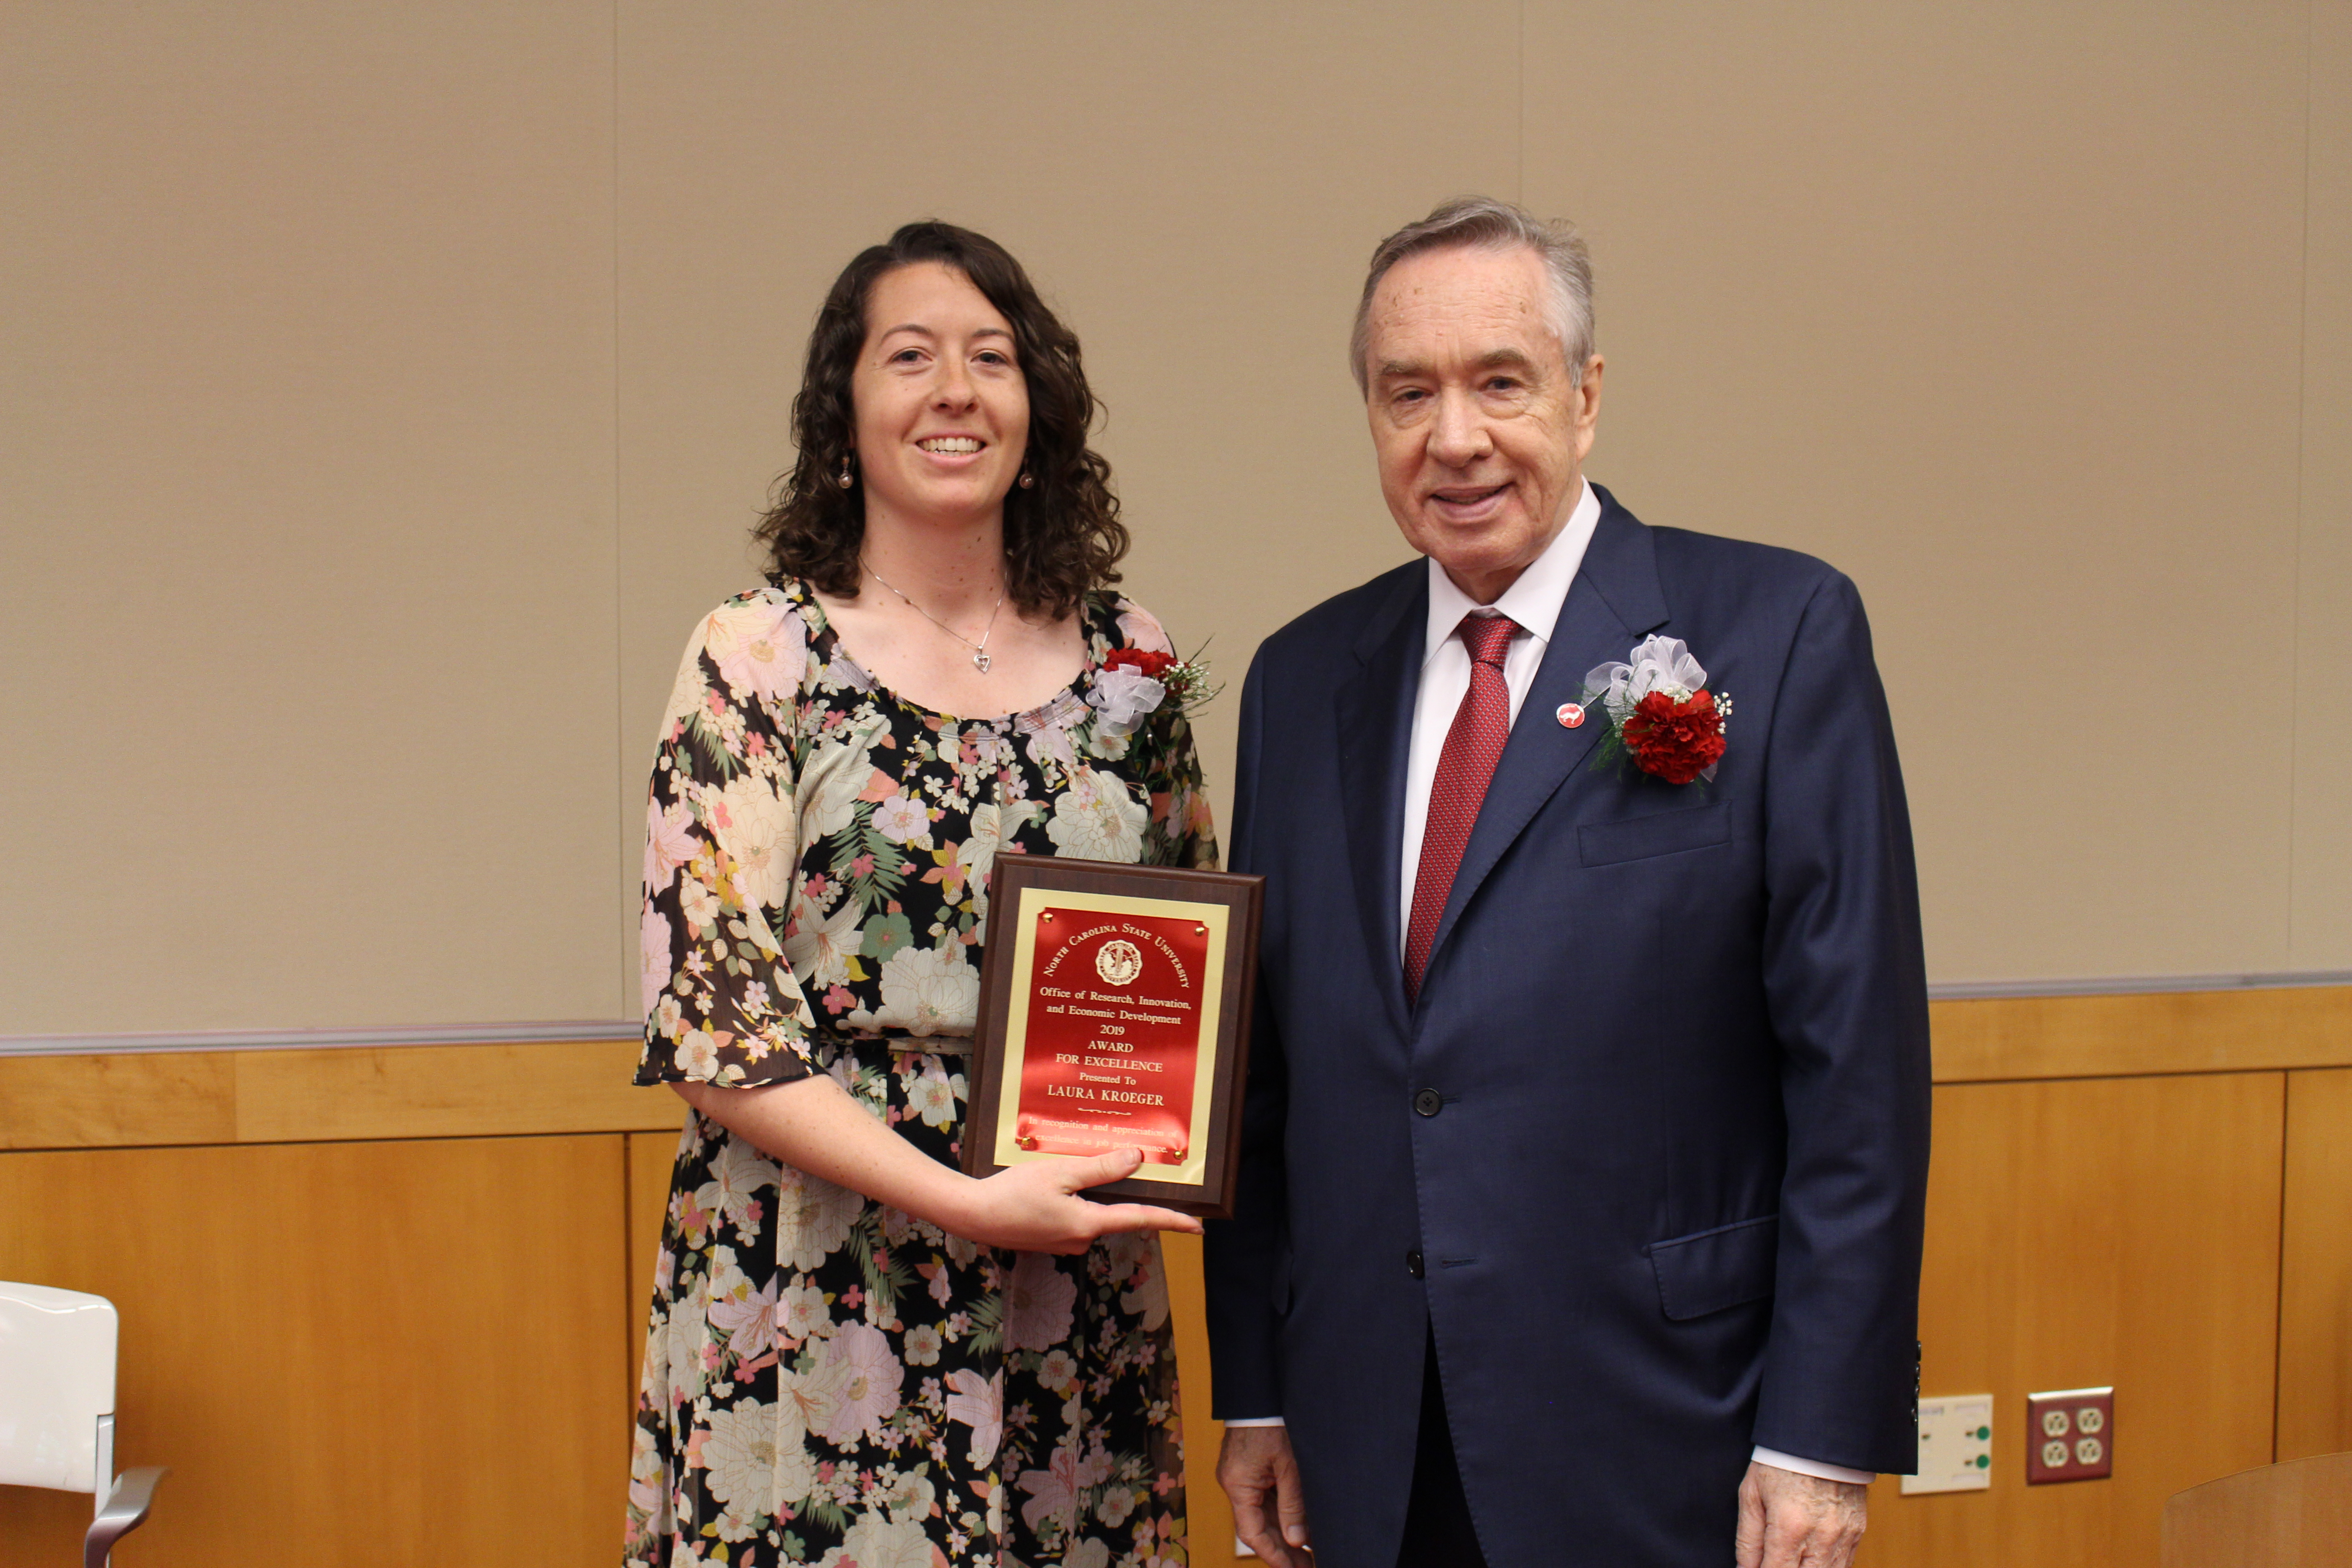 Research Program Specialist Laura Kroeger poses with Vice Chancellor Mladen Vouk after accepting the 2019 ORI Award for Excellence (SHRA)